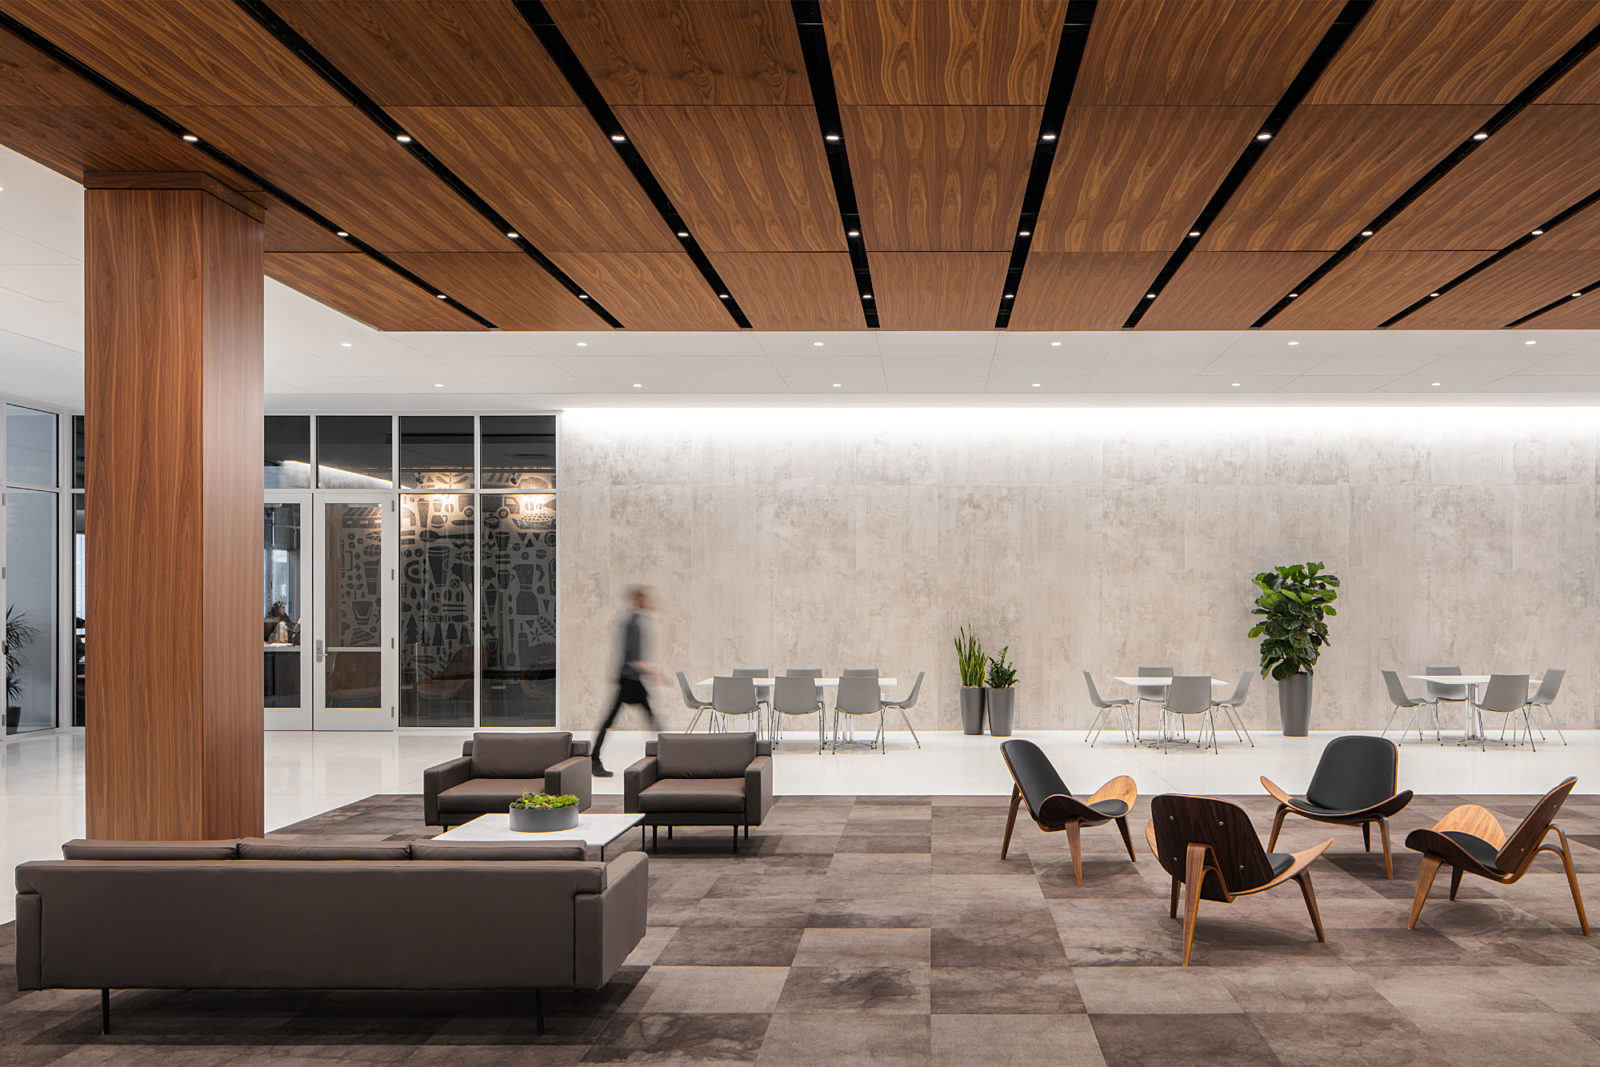 Corporate office lobby in downtown Des Moines, IA. Guest seating and lounge seating surrounded by warm woods and dark hues.